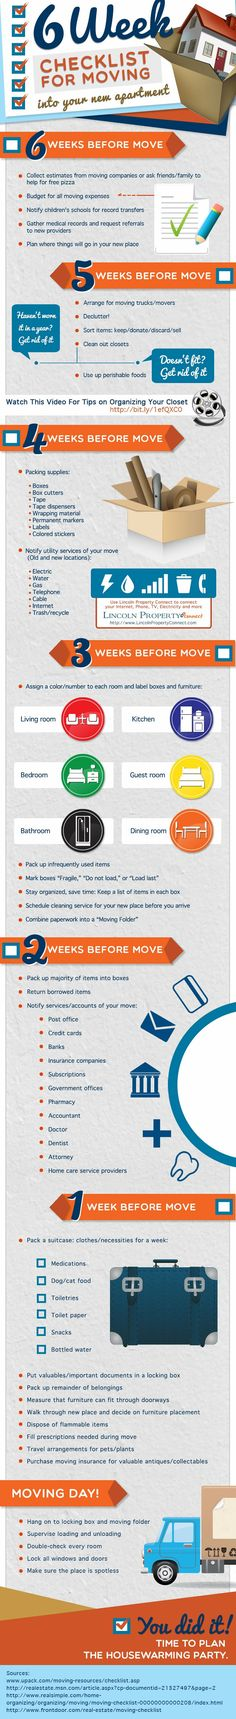 An awesome infographic that shares a checklist for moving into your new apartment. Find helpful ways to getting a move on. From budgeting all your mov